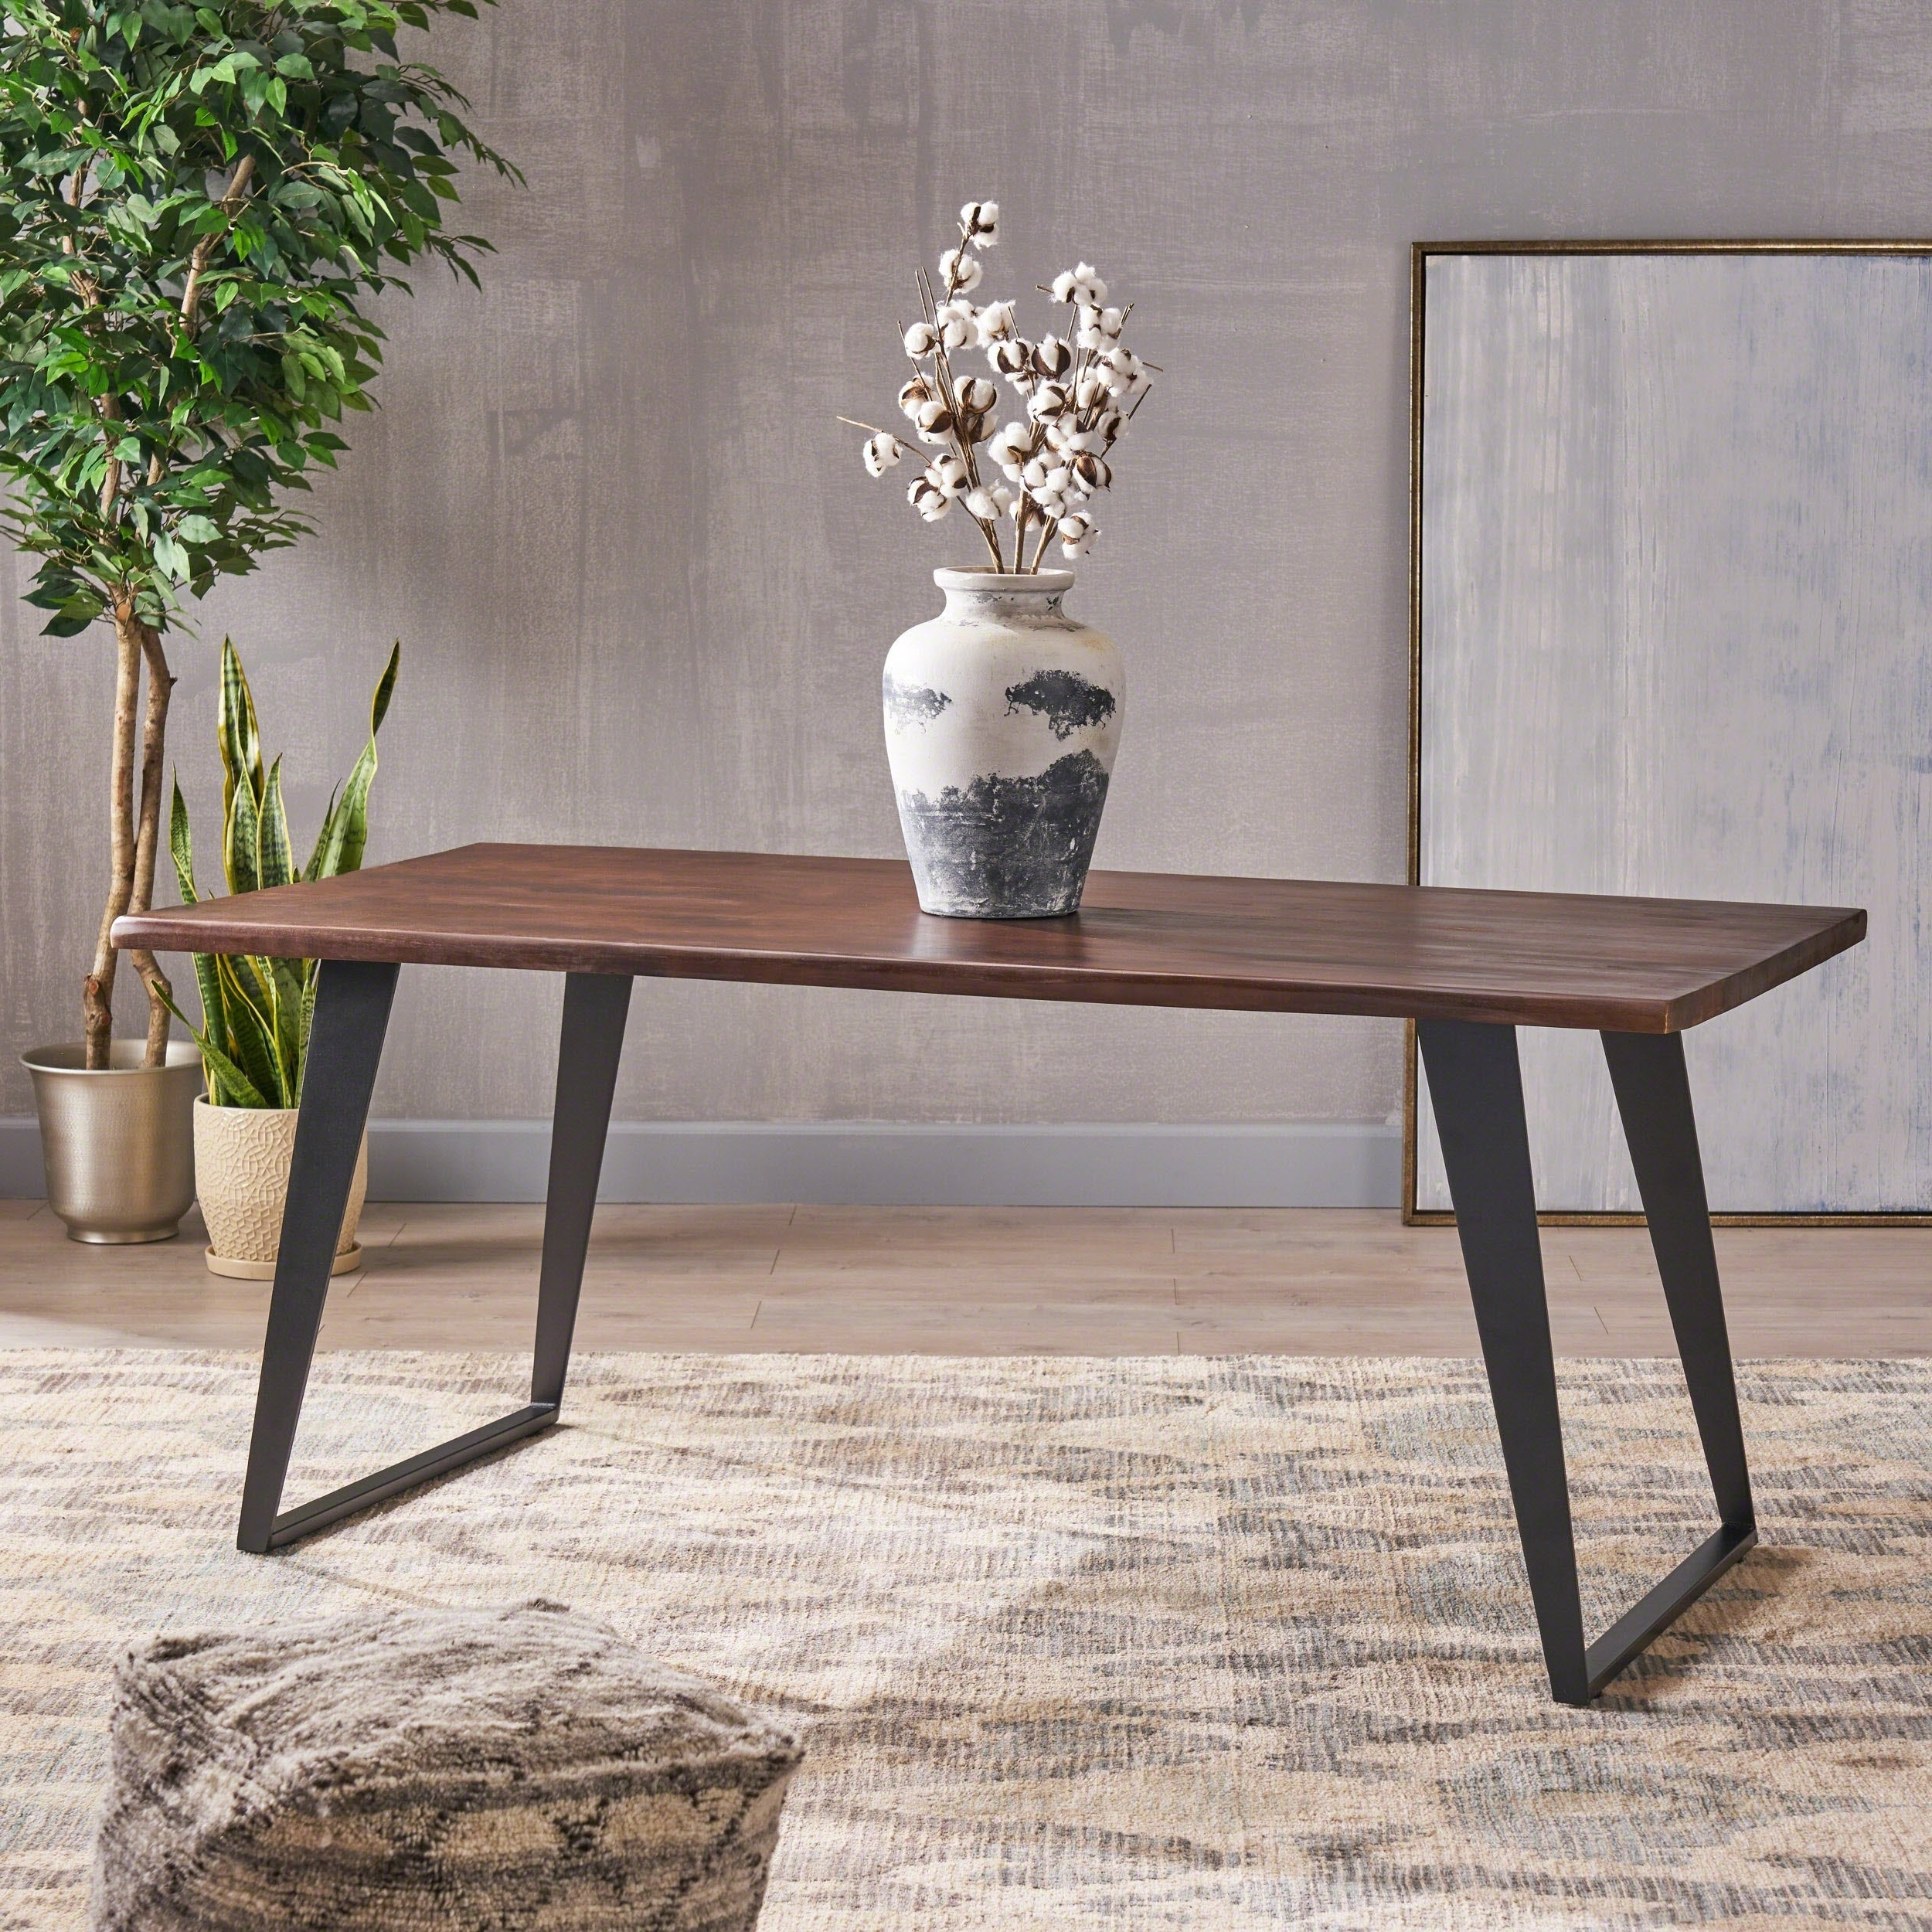 Cavalier Contemporary Indoor 6 Seater Rectangular Acacia Wood Dining Table Christopher Knight Home In 2019 Acacia Wood Top Dining Tables With Iron Legs On Raw Metal (View 8 of 25)